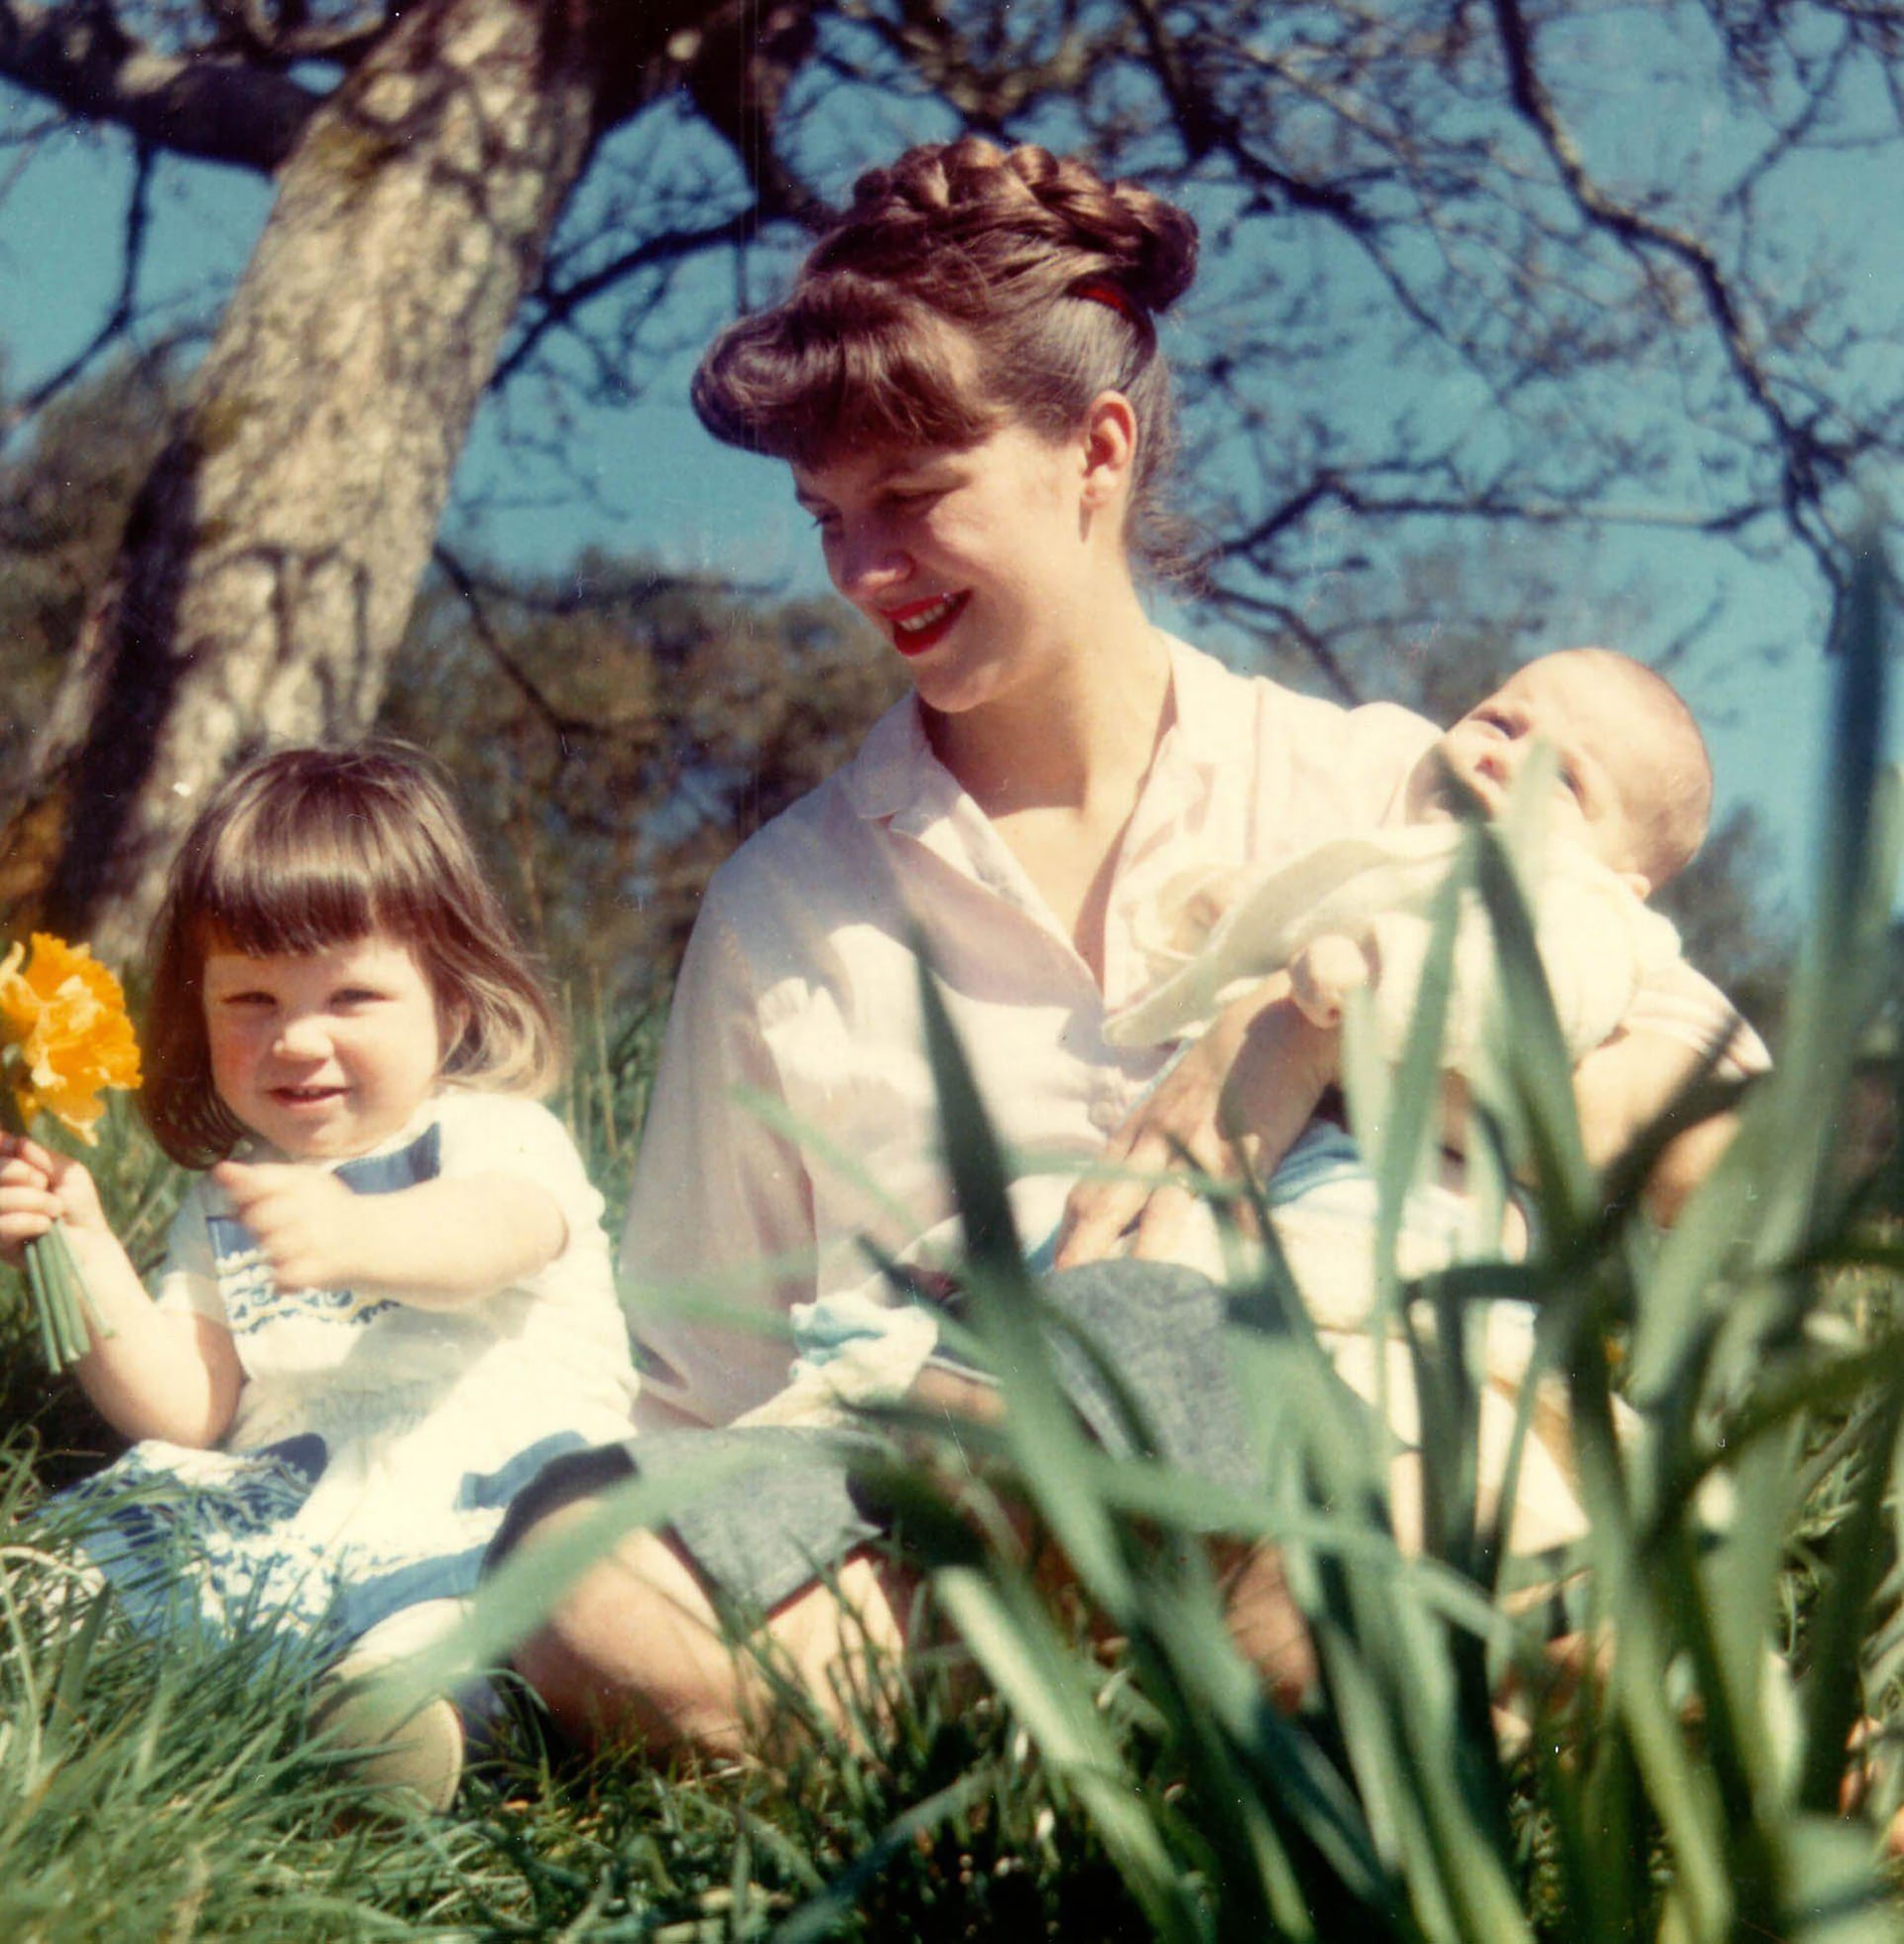 Sylvia Plath with her two children, Nicholas and Frieda, April 1962 Photograph: Siv Arb/Writer Pictures